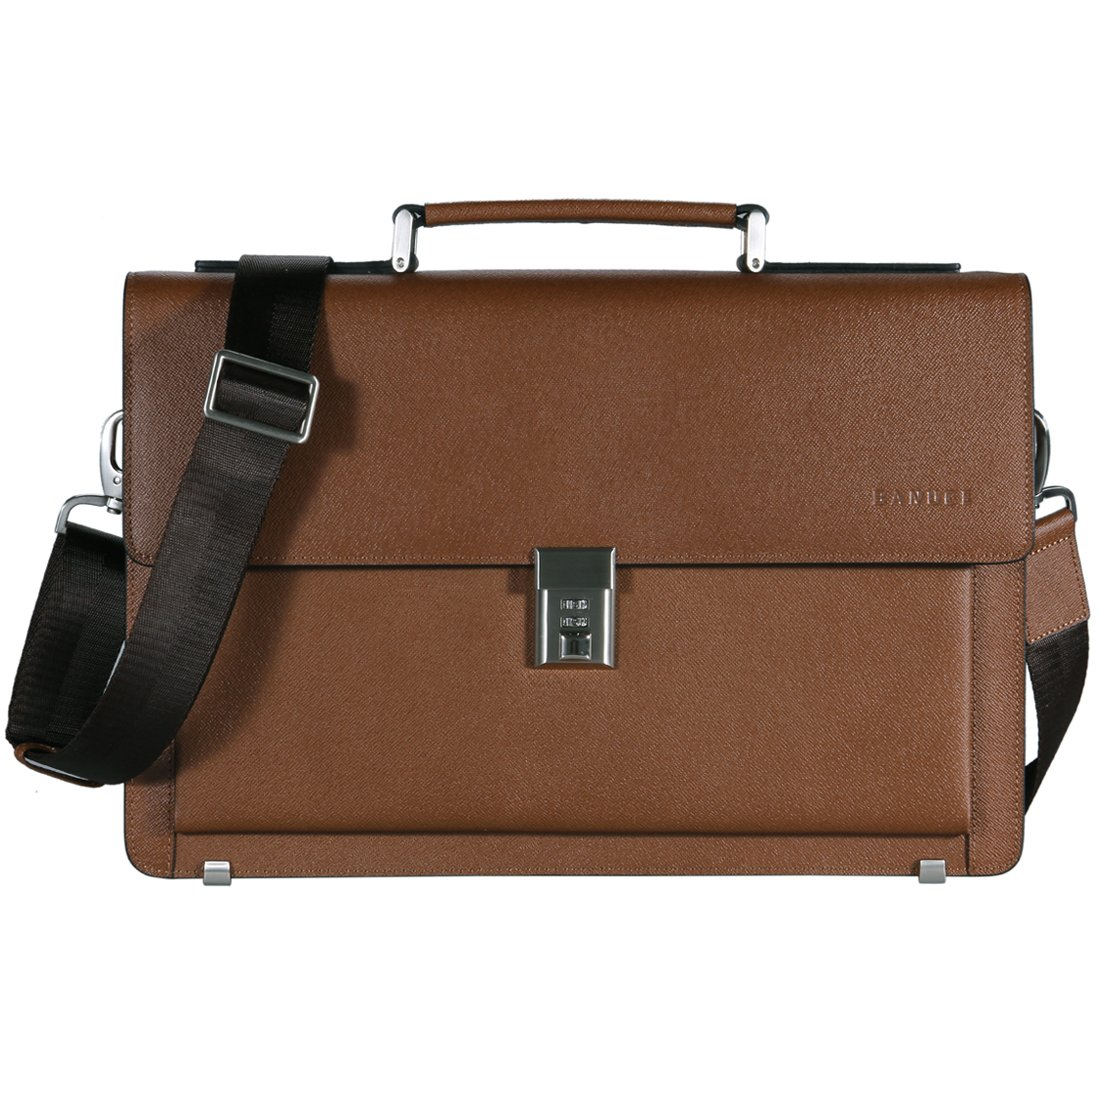 Banuce Genuine Leather Briefcase for Men Lock 2way Business Tote Laptop Messenger Bag Attache Case Brown